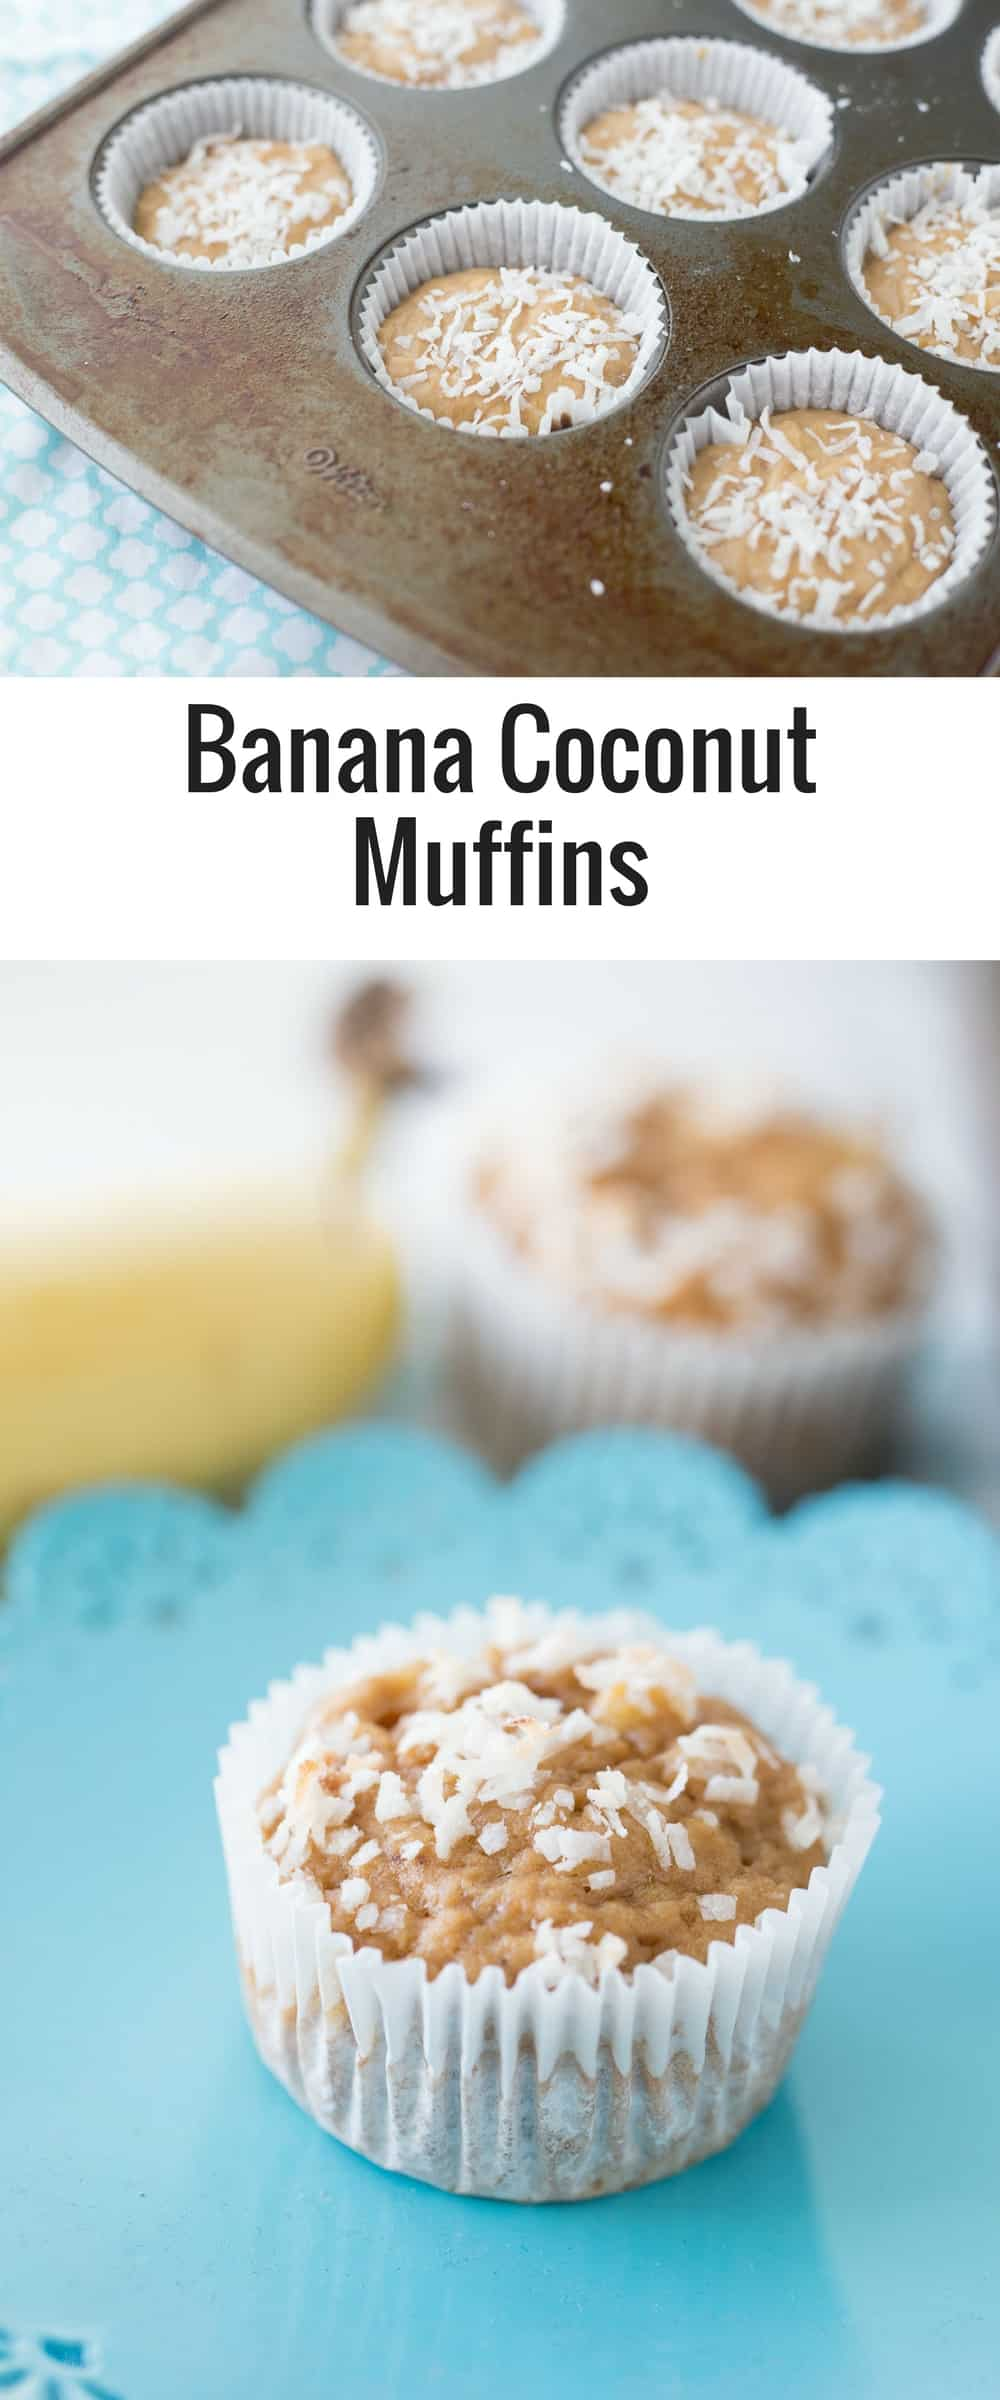 These Banana Coconut Muffins are delicious and simple! Coconut sugar and applesauce makes muffins something you can feel a little less guilty about!